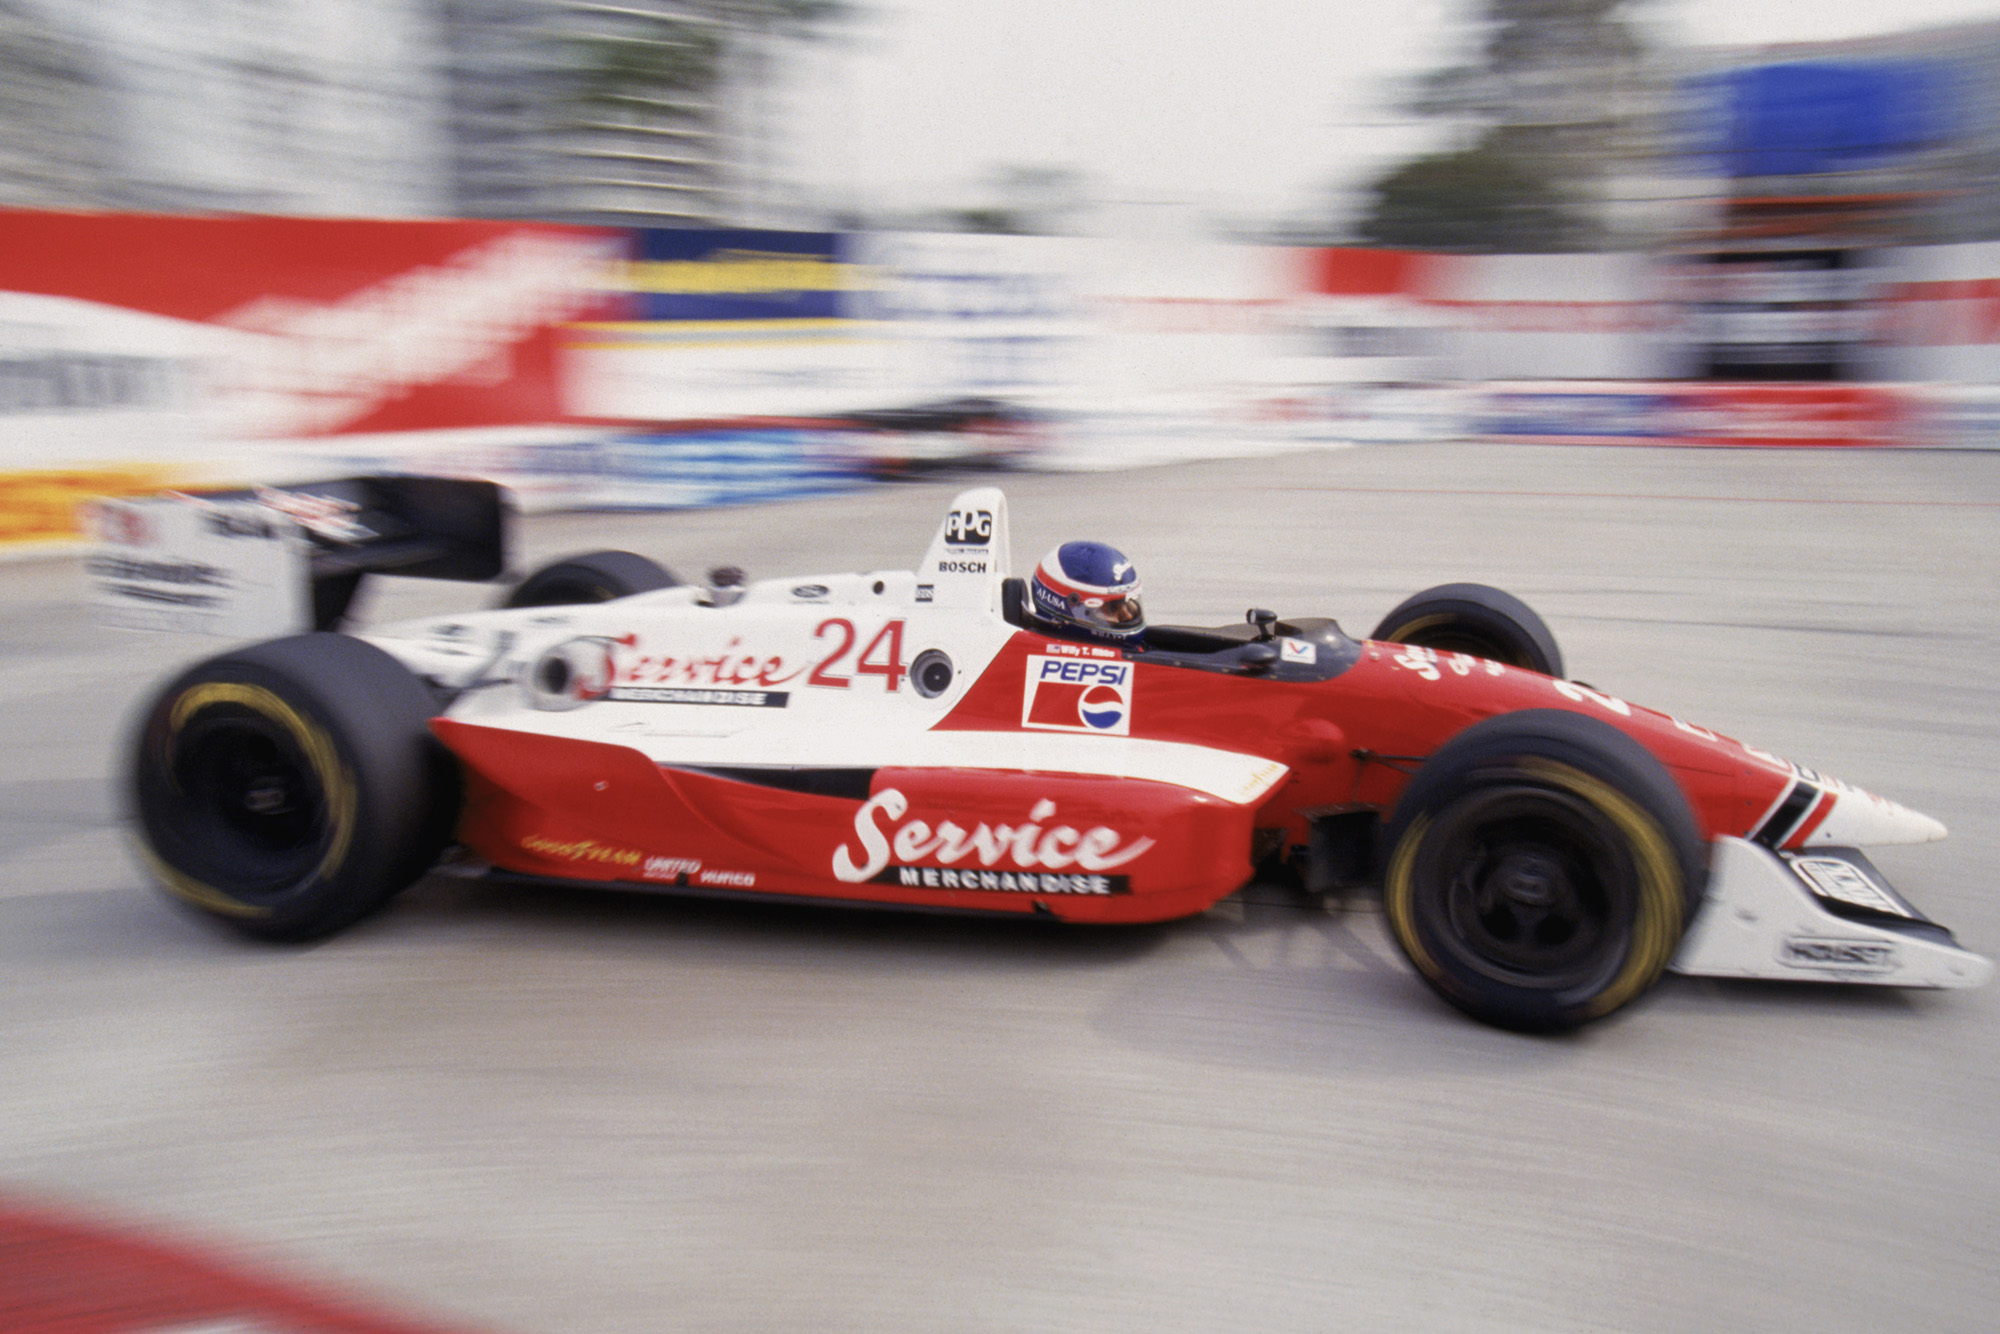 Willy T ribbs in the 1990 Long Beach Grand Prix